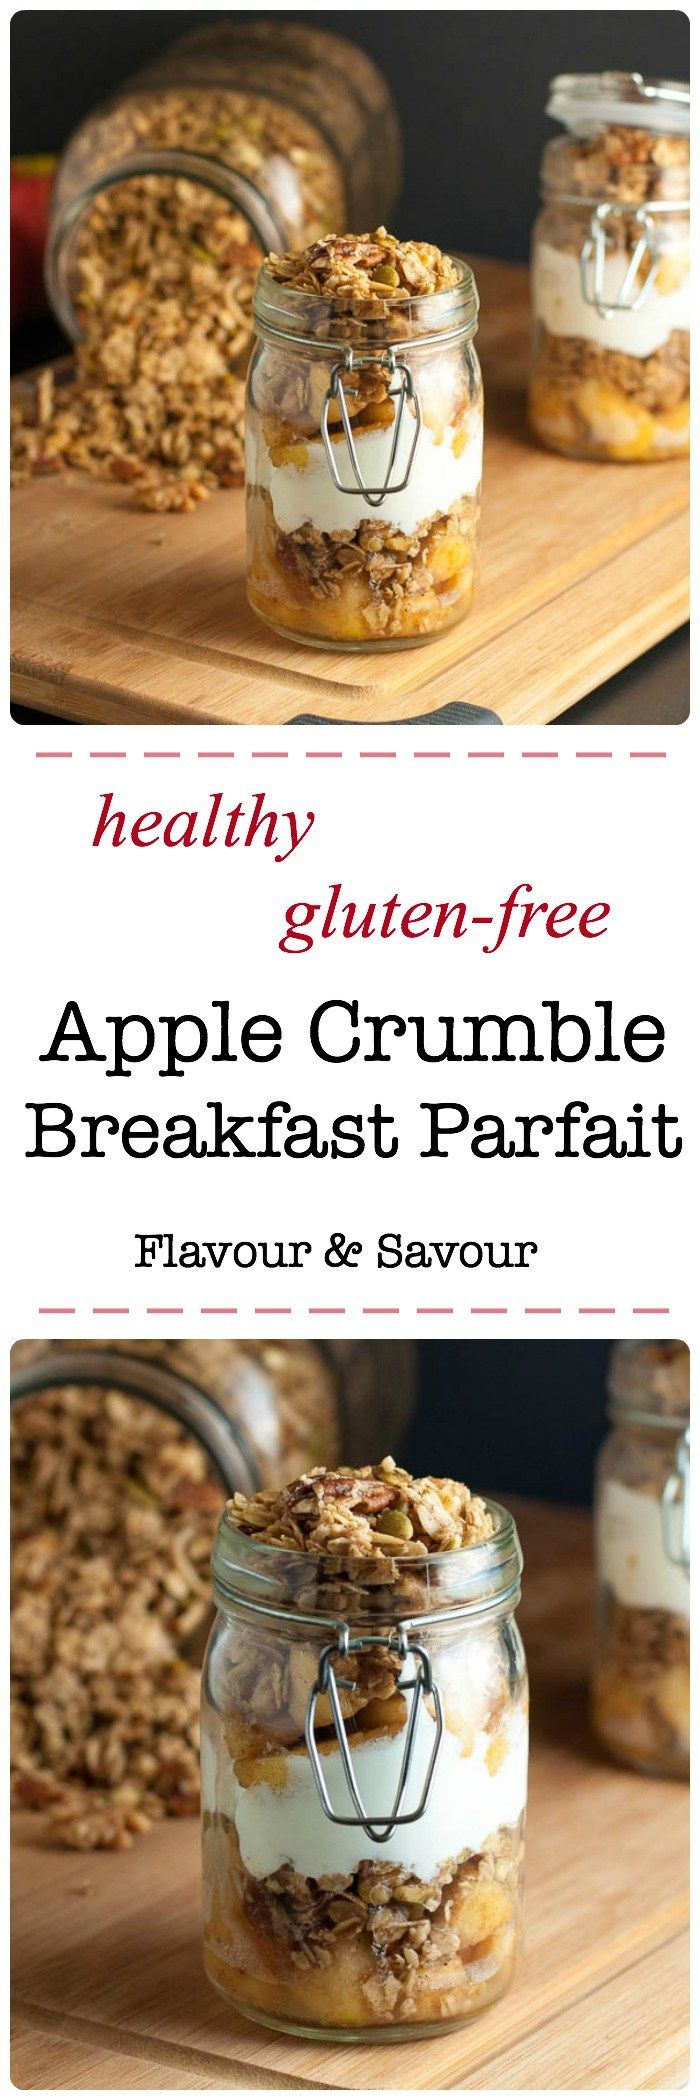 Healthy Gluten-Free Apple Crumble Breakfast Parfait. Pack your breakfast in a jar and feel like you're having dessert! |www.flavourandsavour.com